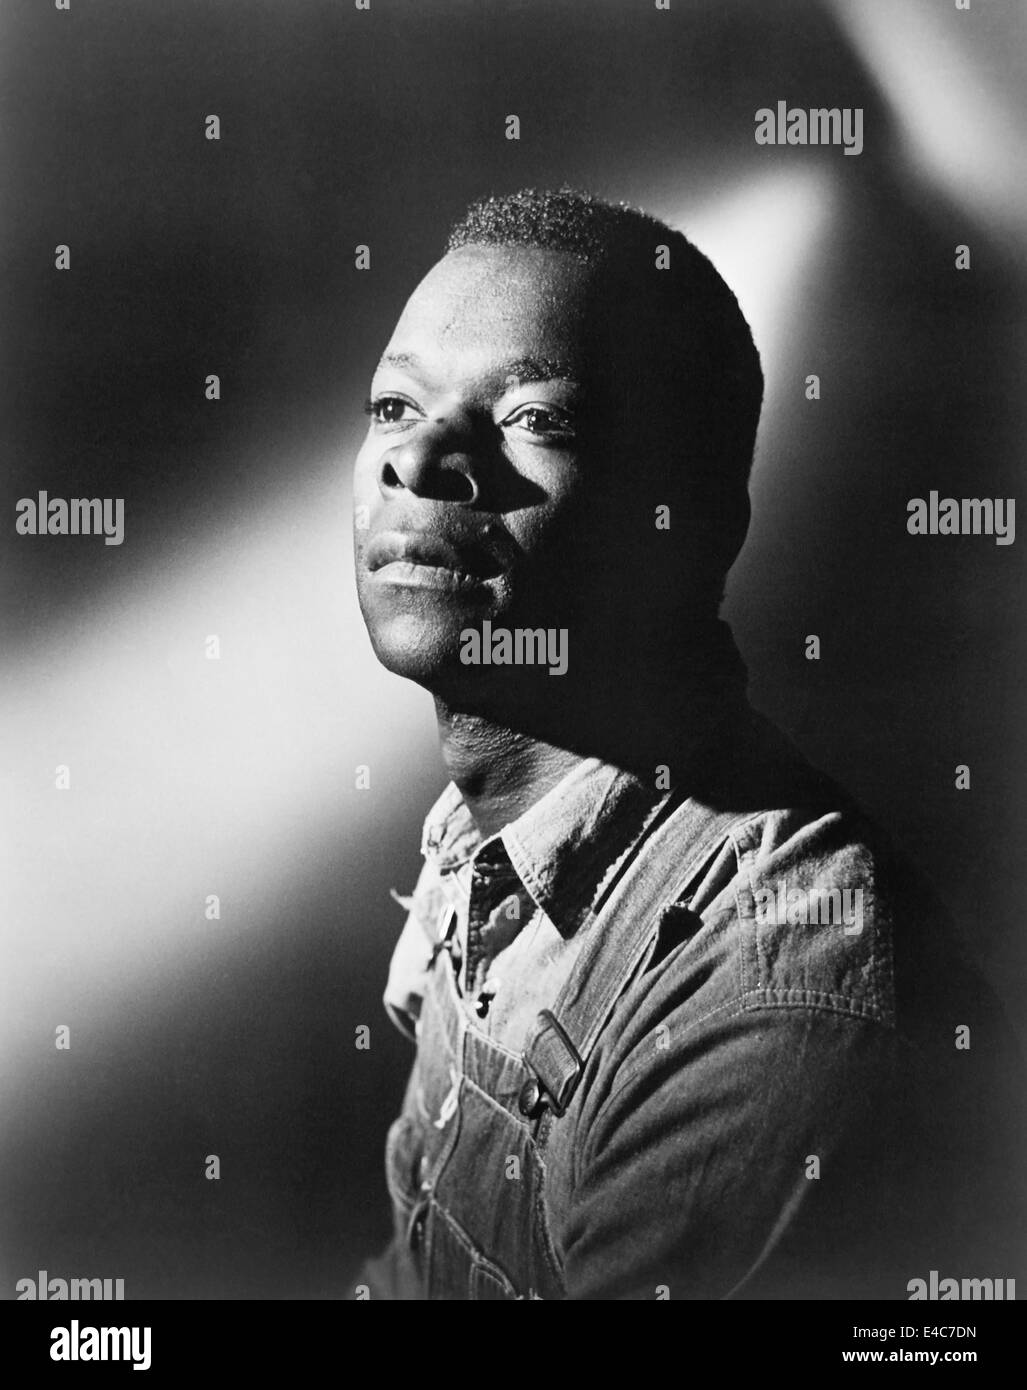 Brock Peters,  on-set of the Film, 'To Kill a Mockingbird', 1962 - Stock Image